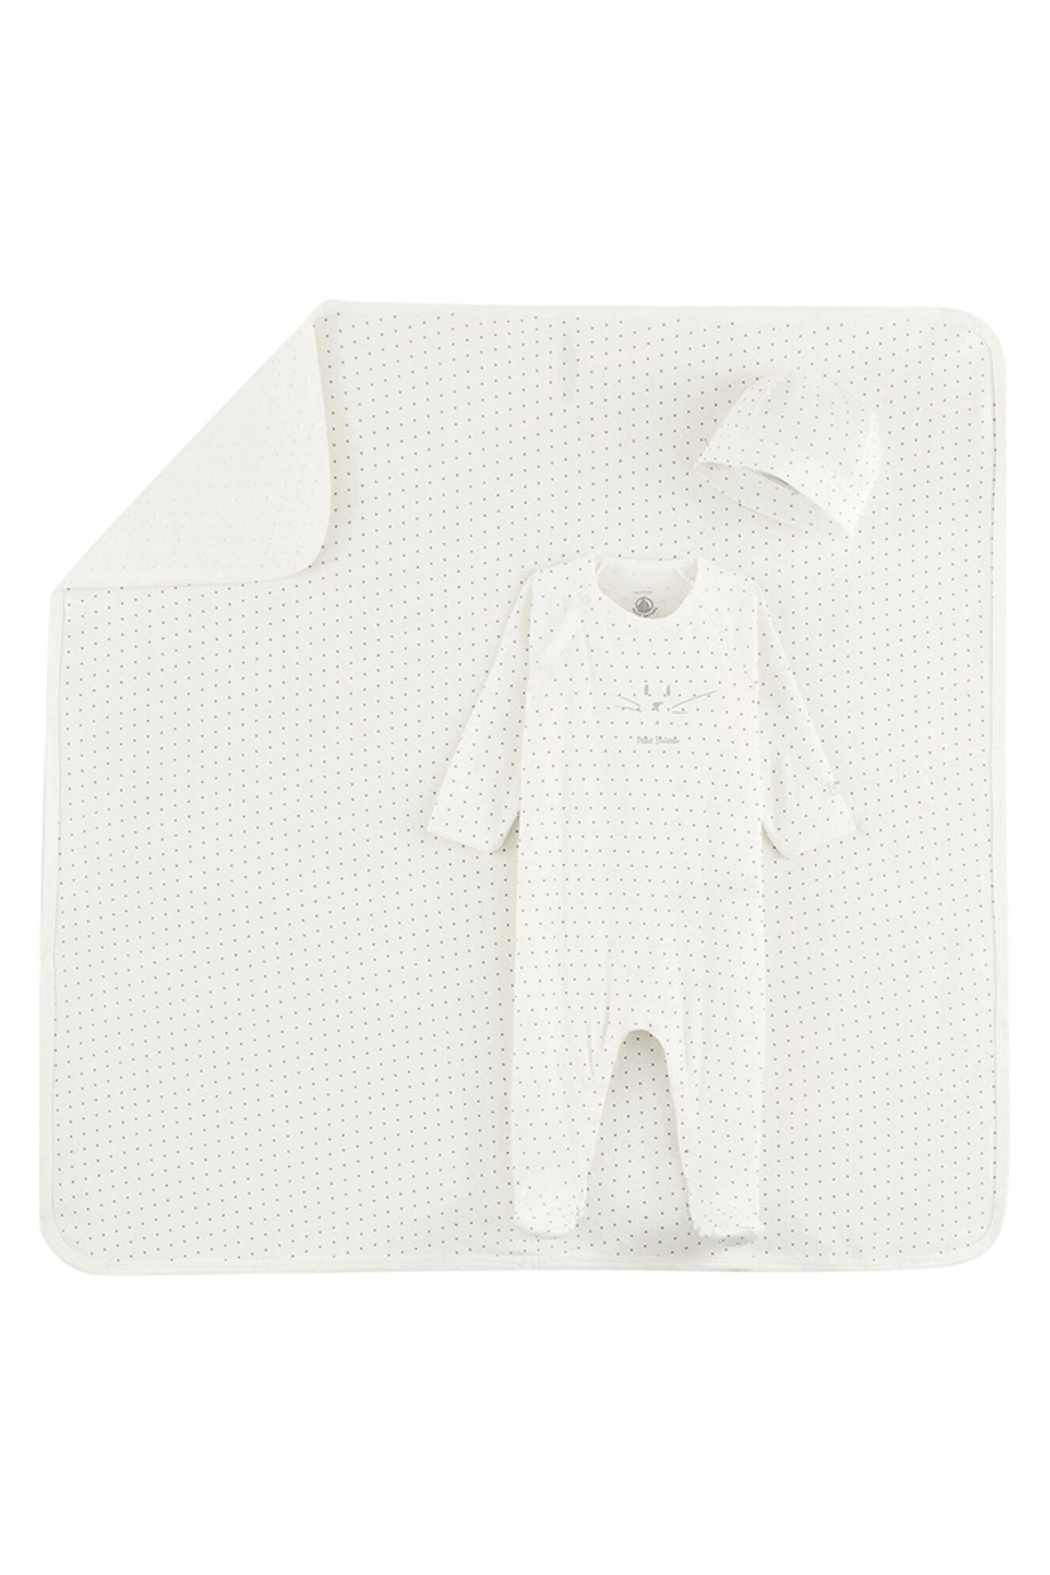 Petit Bateau  Baby Boy 3 Peice Gift Set ( Dots Footie,Blanket & Beanie)Best For Baby Shower Gifting - Main Image